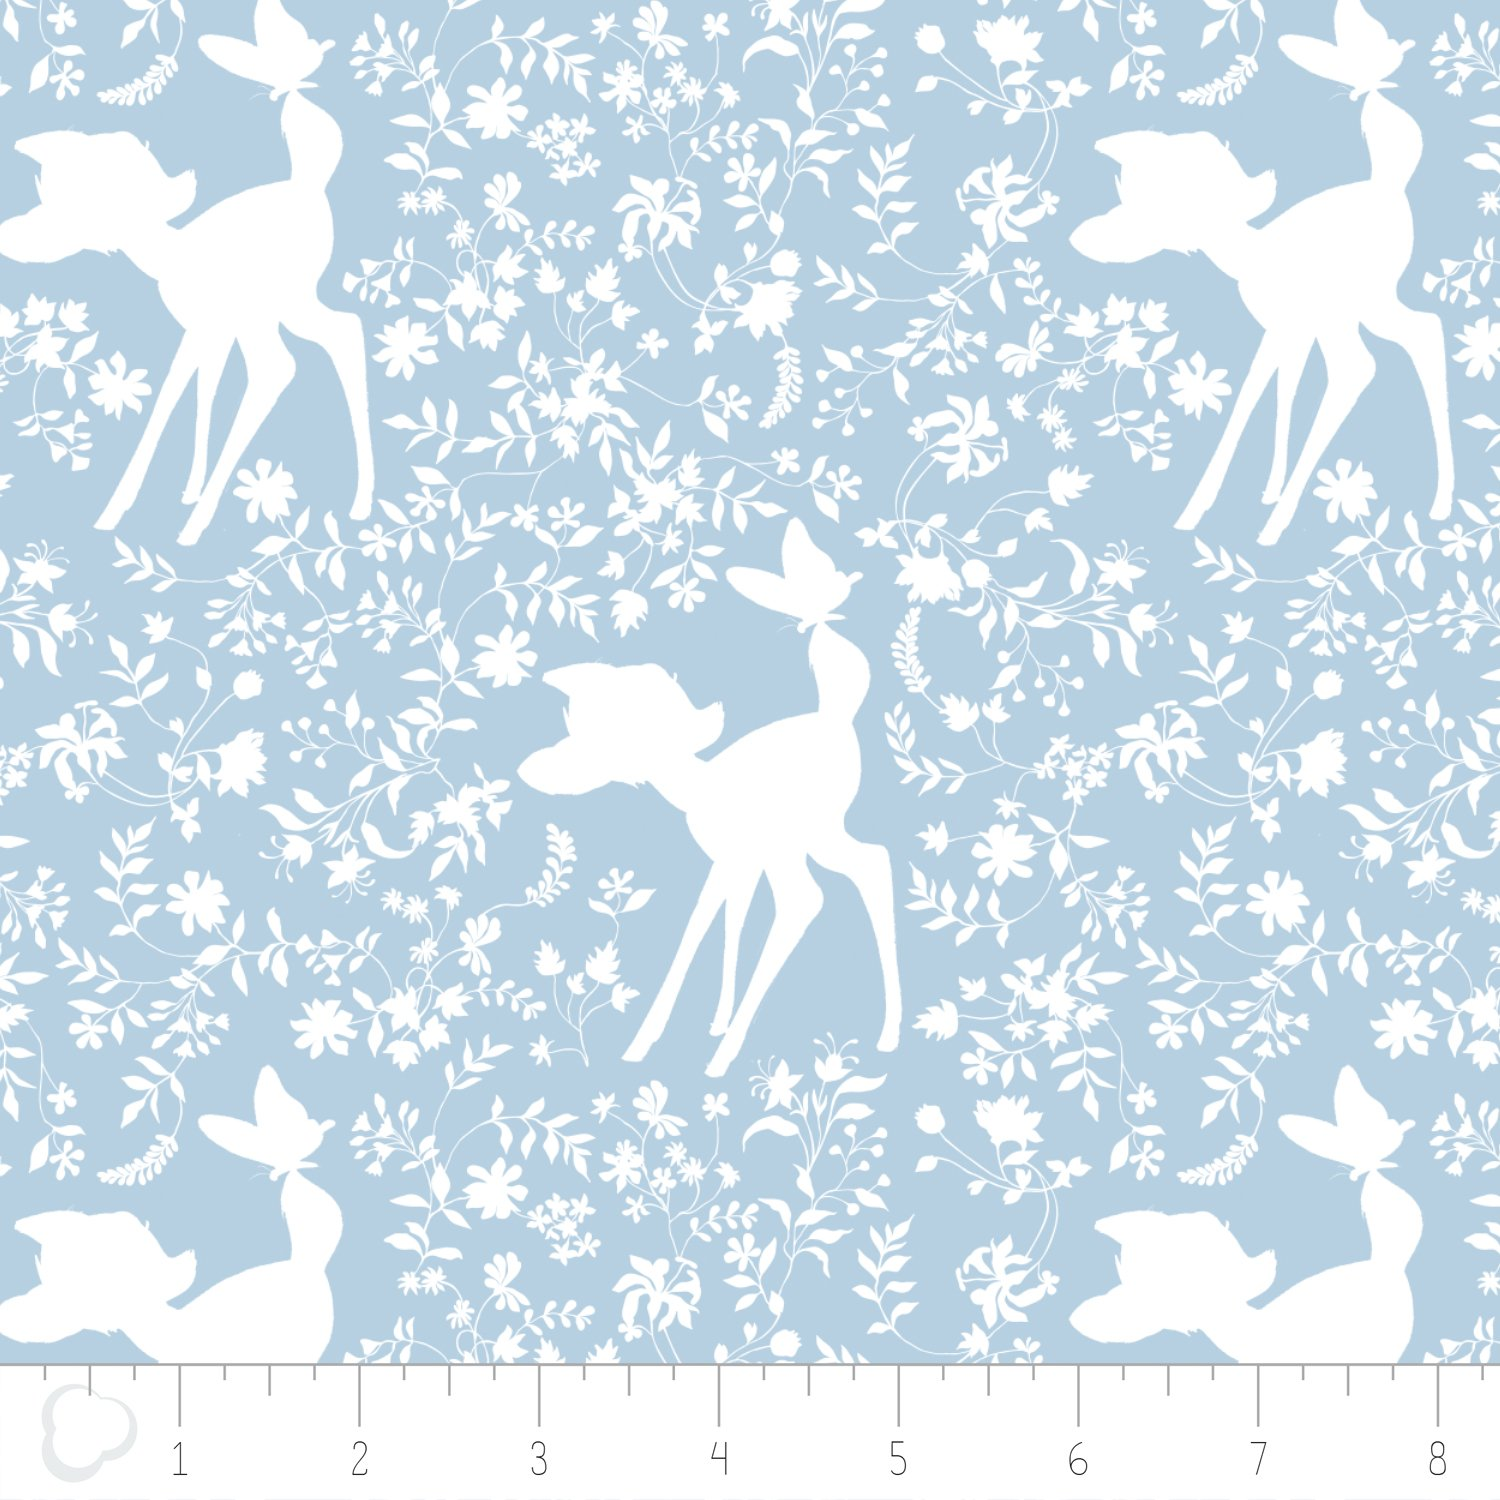 Bambi - Silhouette - Blue